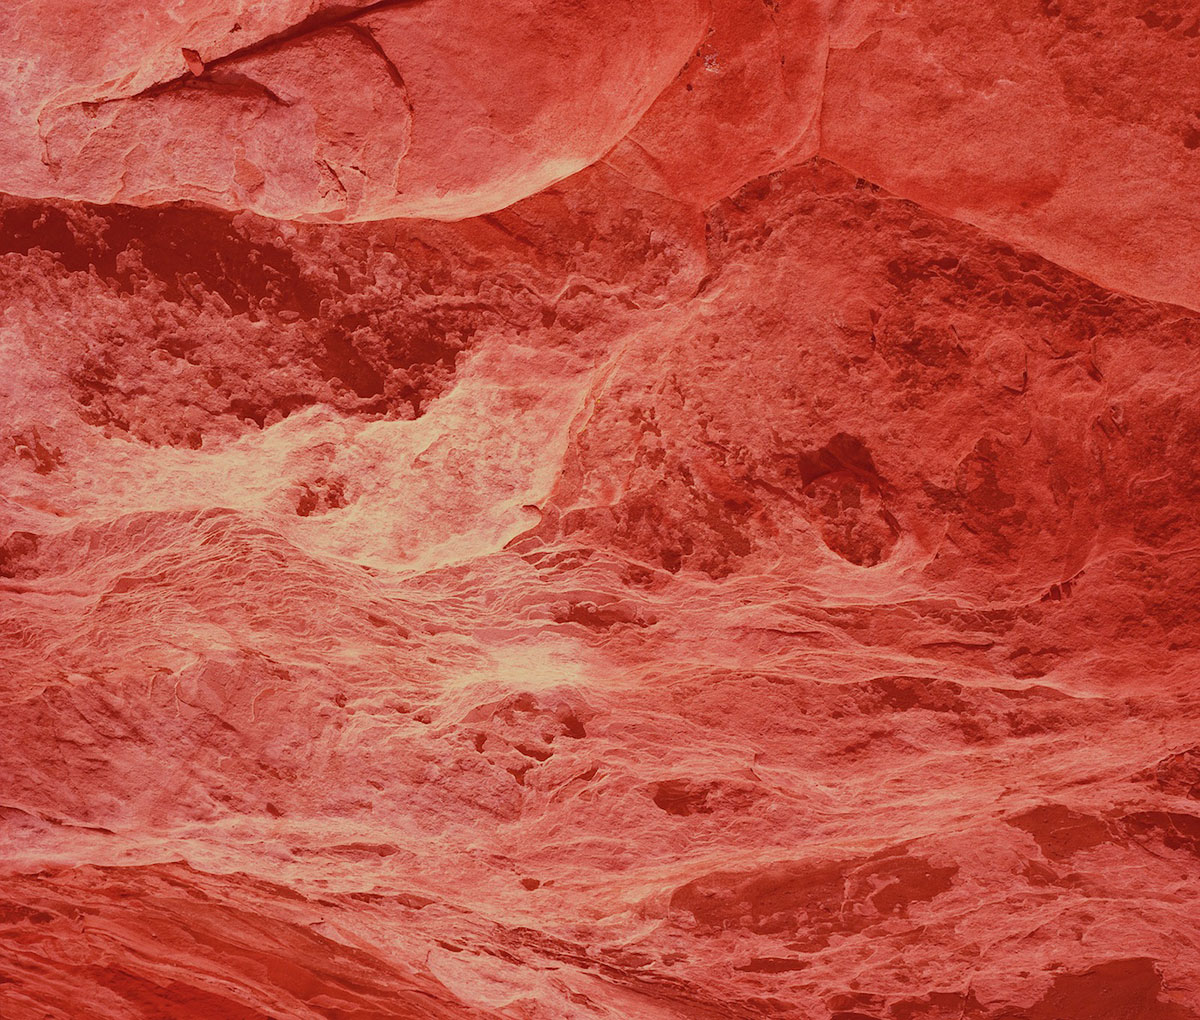 David Benjamin Sherry, <em>Electric Crimson Mountain, Utah</em>, 2012. Traditional Color Darkroom Photograph, 30 × 40 inches. Courtesy of the artist and Salon 94, New York.